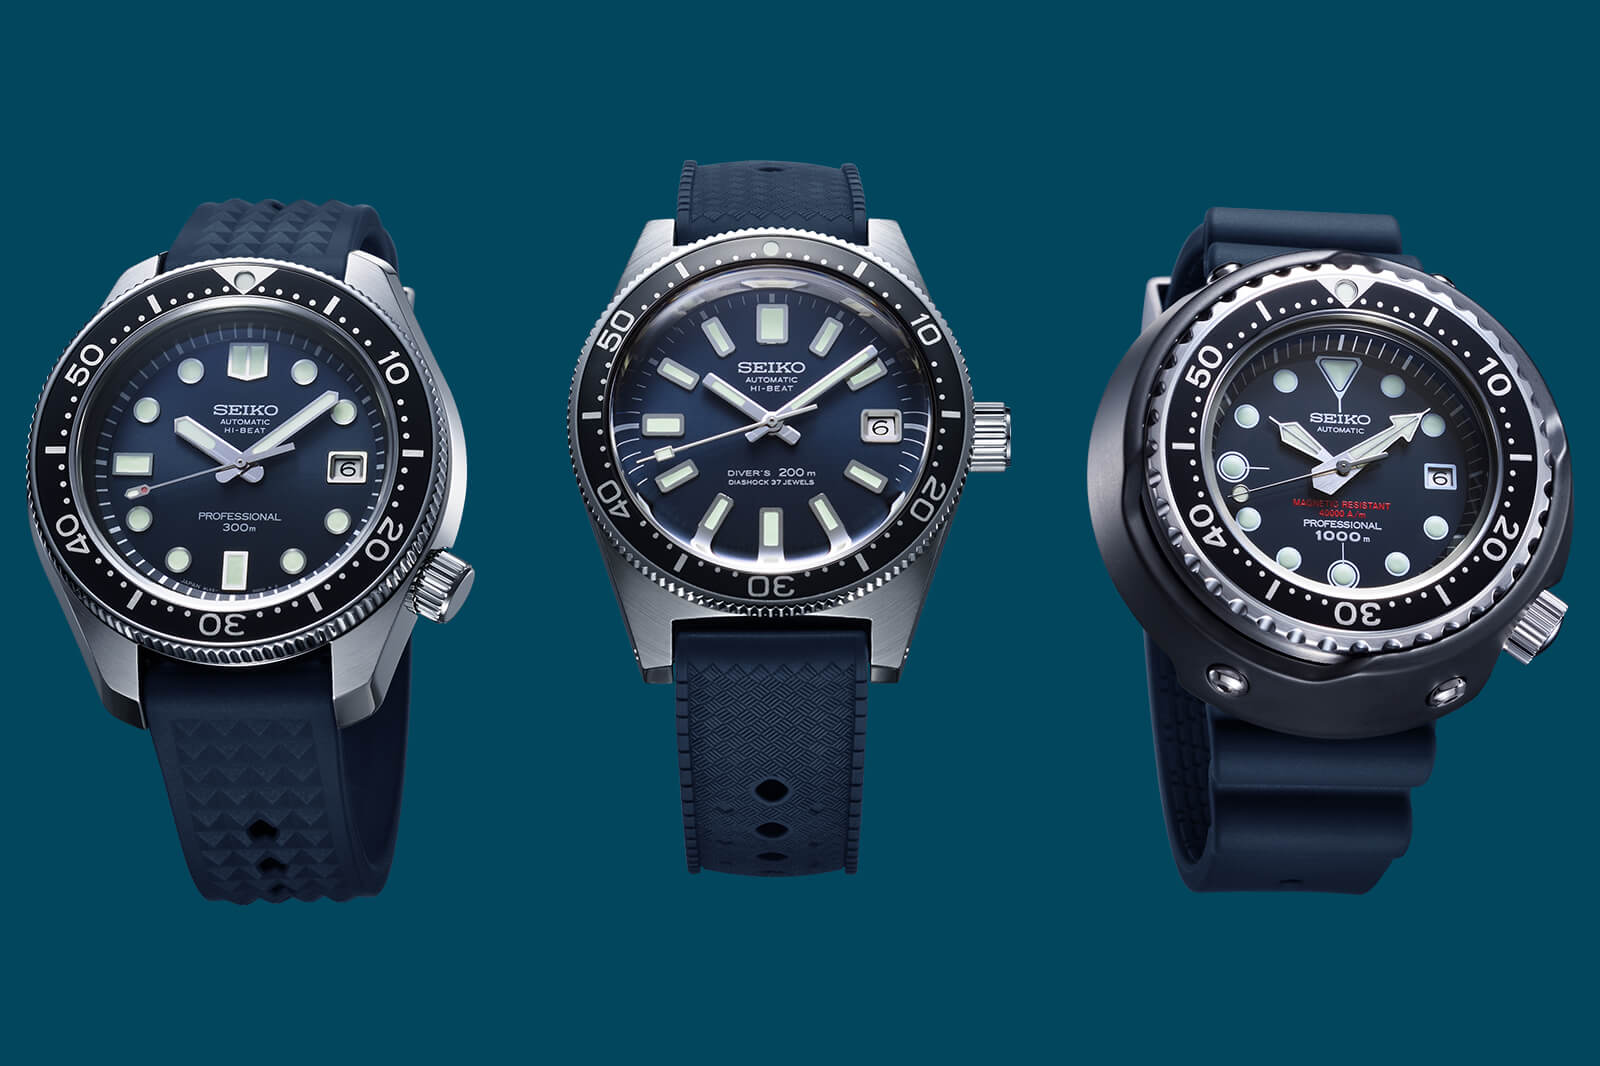 Seiko Diver's Watch 55th Anniversary Limited Editions portada